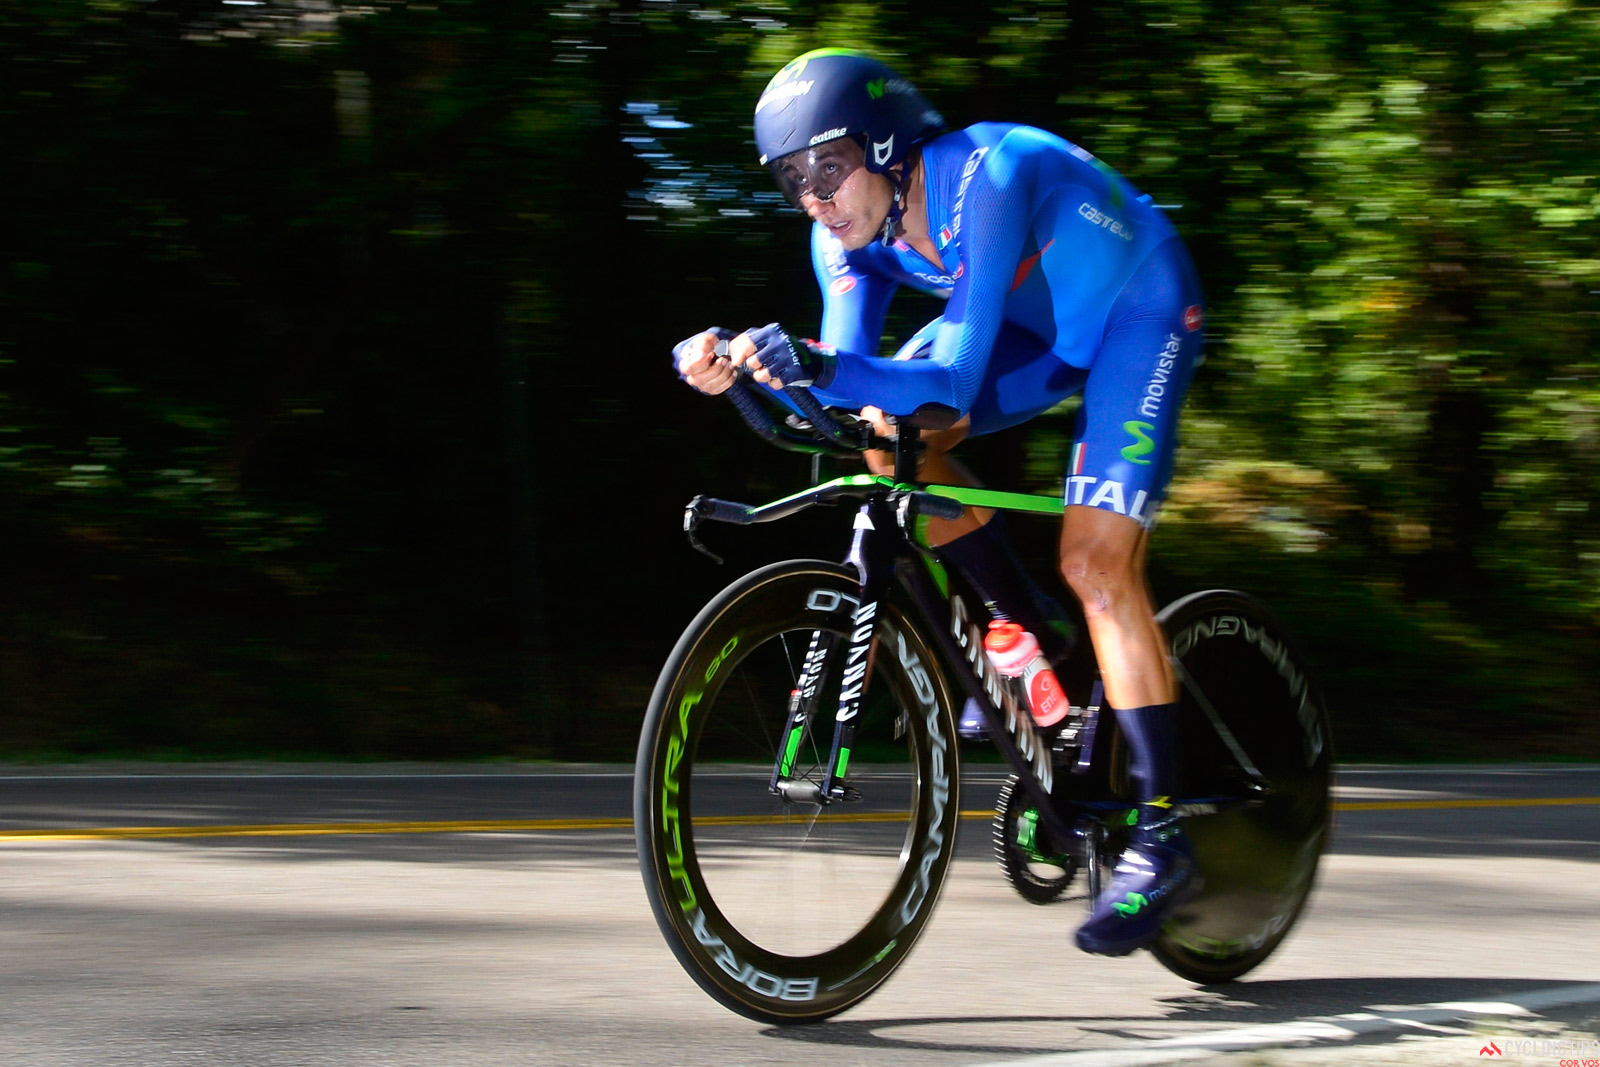 Adriano Malori en route to silver medal in the 2015 Elite world time trial championship in Richmond, Virginia.